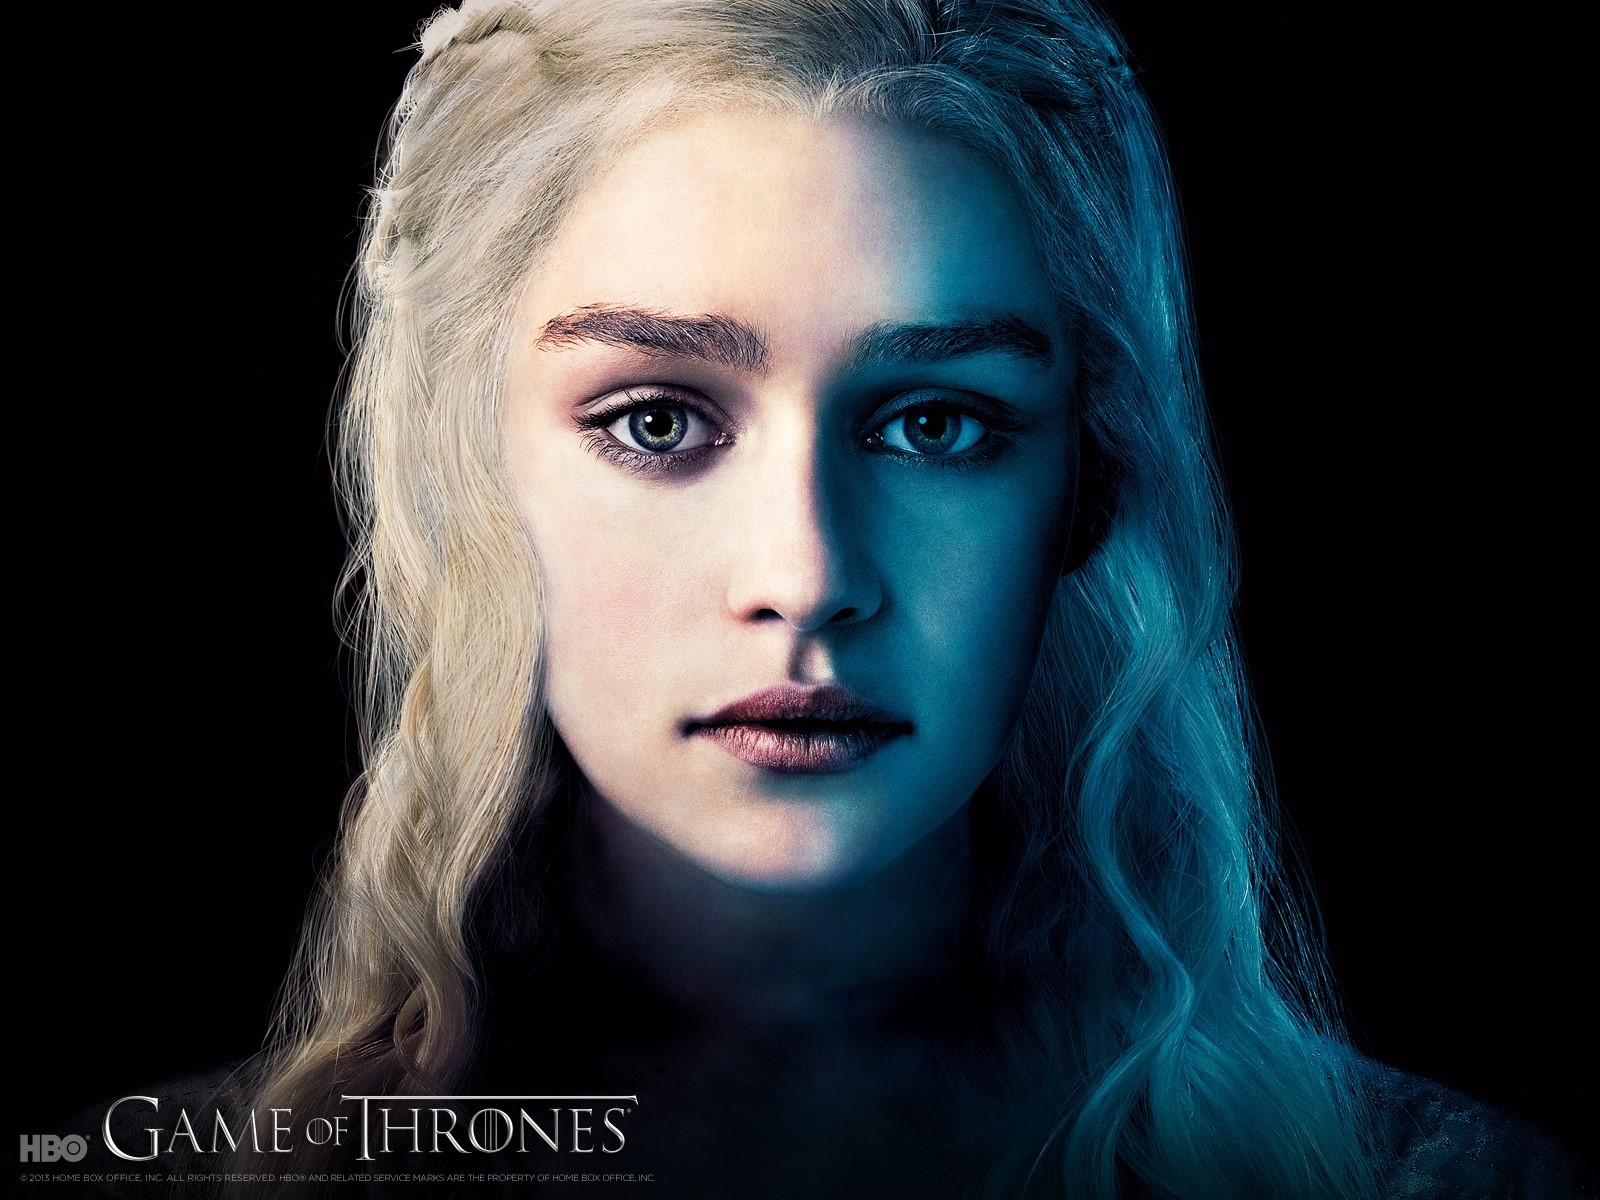 Emilia Clarke en Game of thrones Wallpaper ID1091 1600x1200